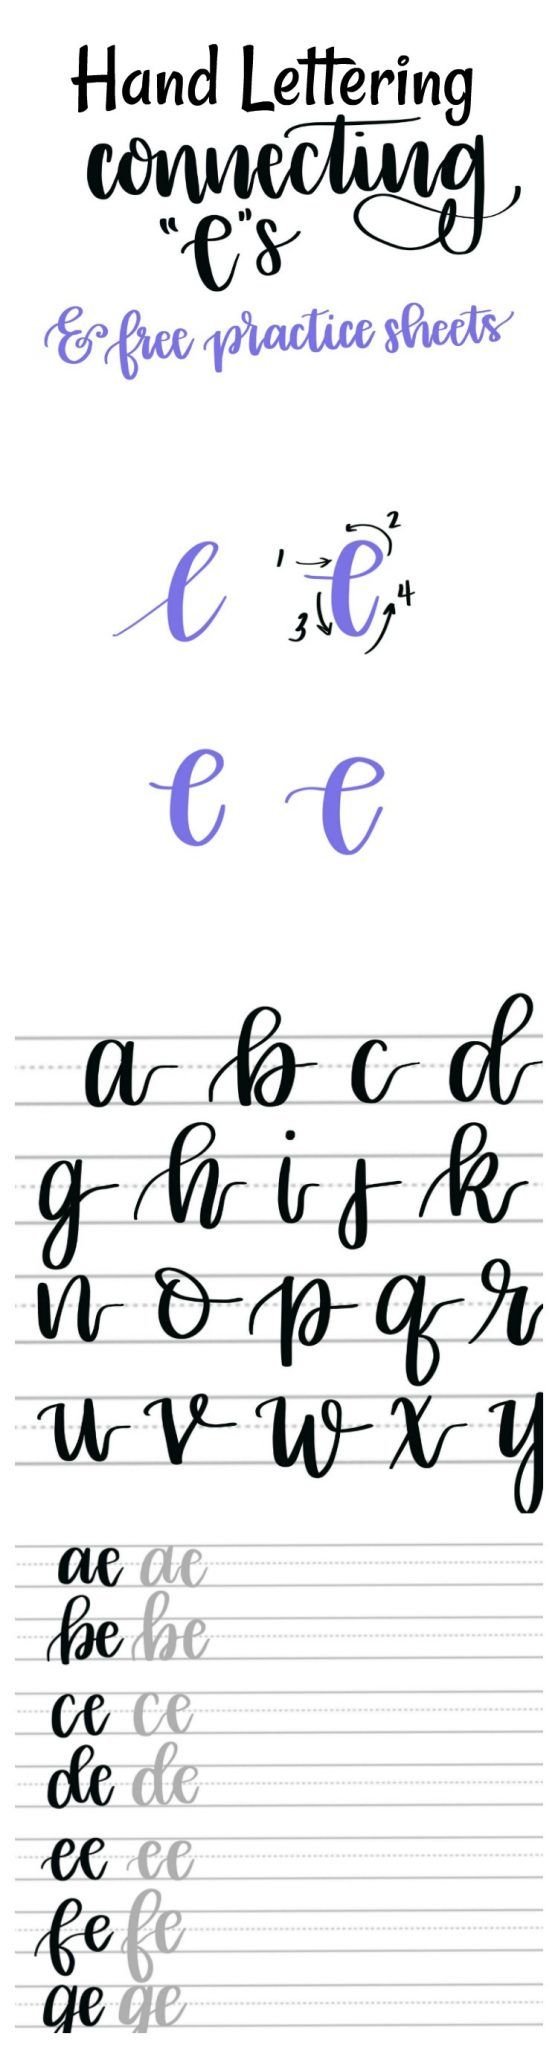 Hand Lettering Connecting E S Tutorial Free Practice Sheets Amy Latta Creations Lettering Hand Lettering Practice Hand Lettering Tutorial [ 2048 x 558 Pixel ]